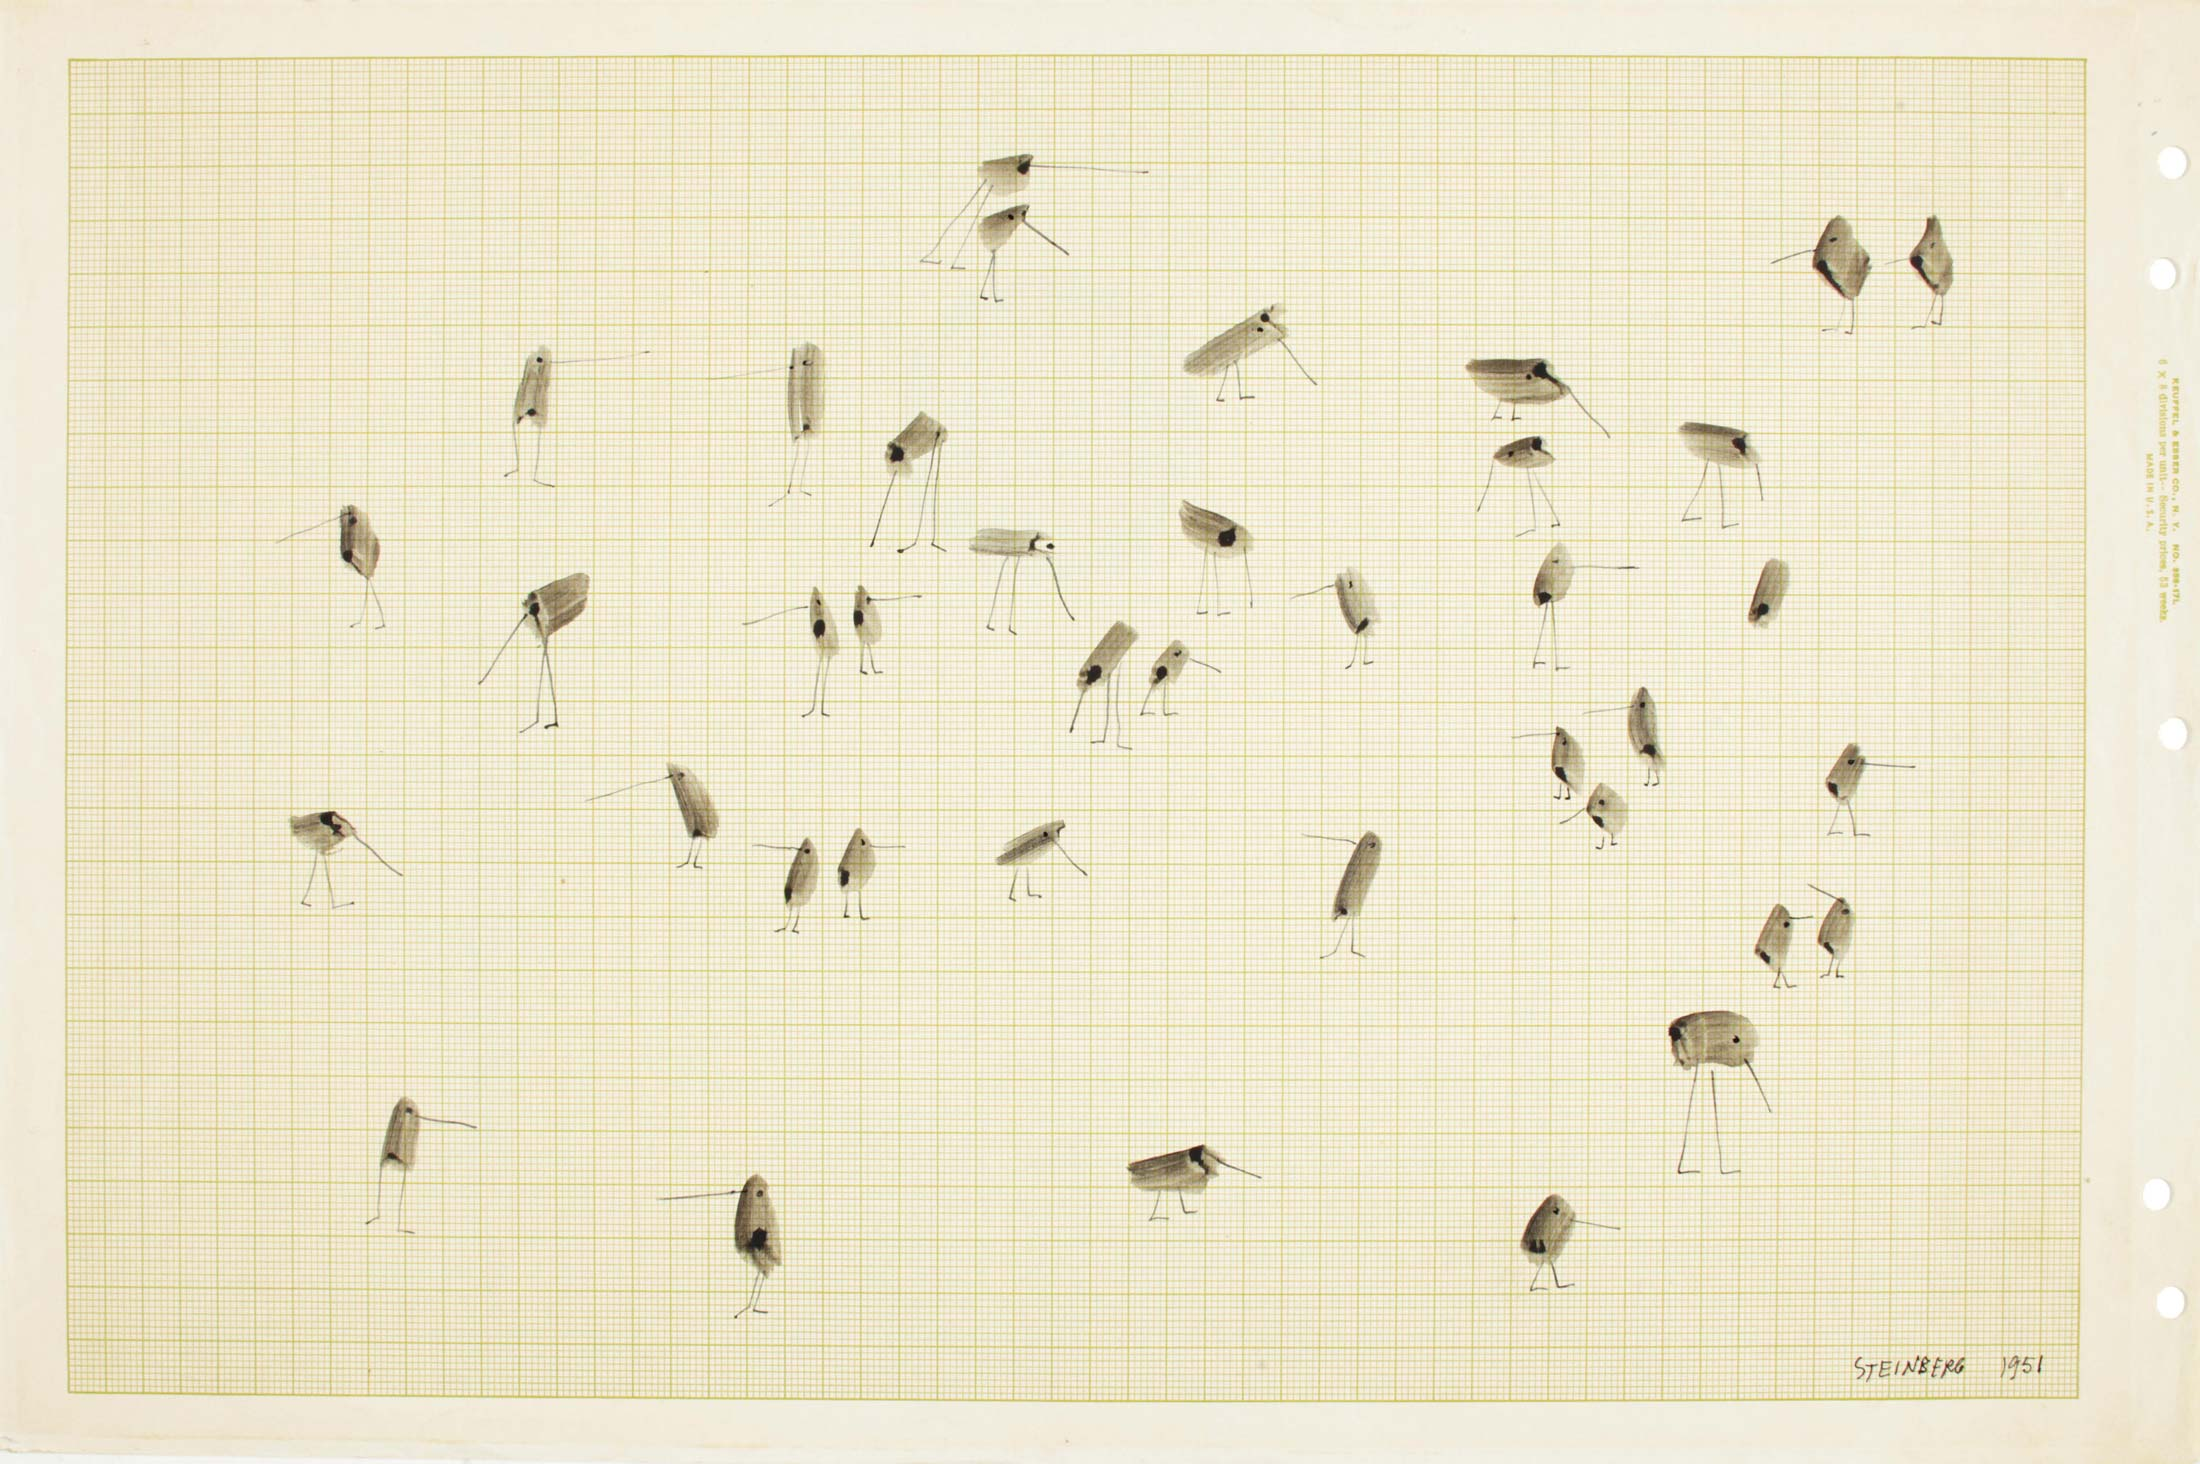 <em>Untitled</em>, 1951. Ink on graph paper, 11 x 16 ½ in. Collection of Daniela Roman.